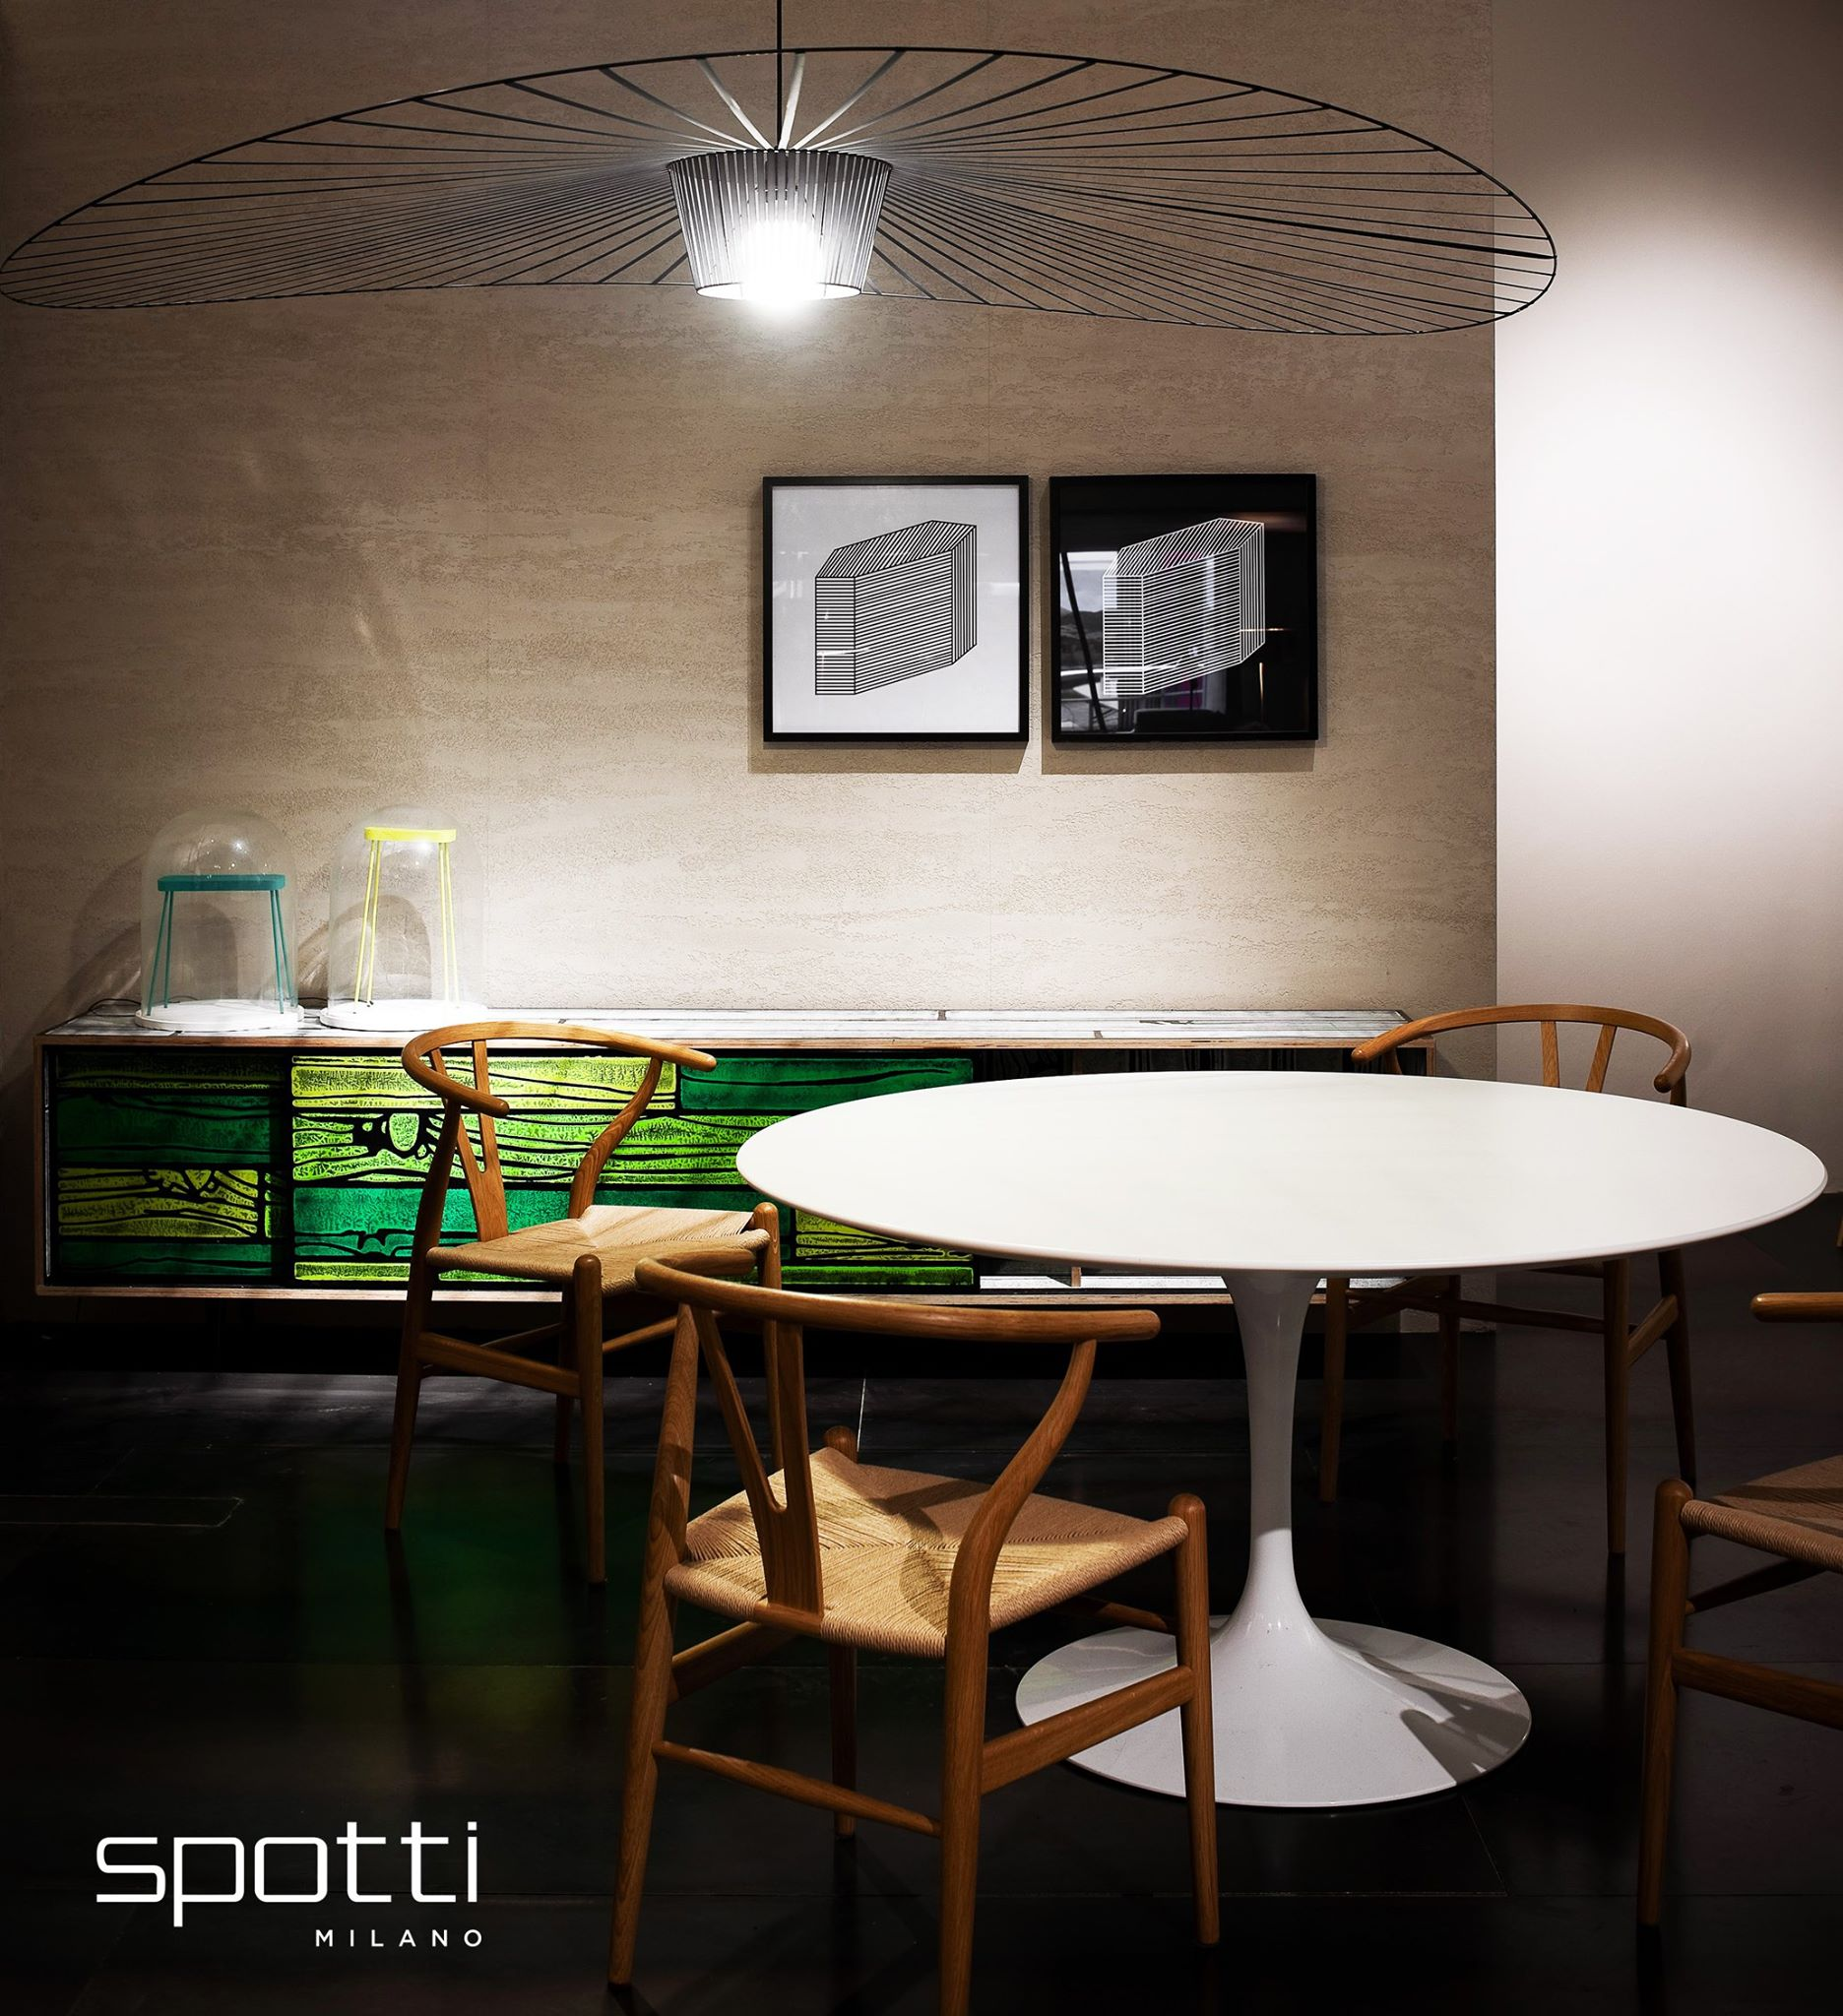 spotti milano in the mood for design